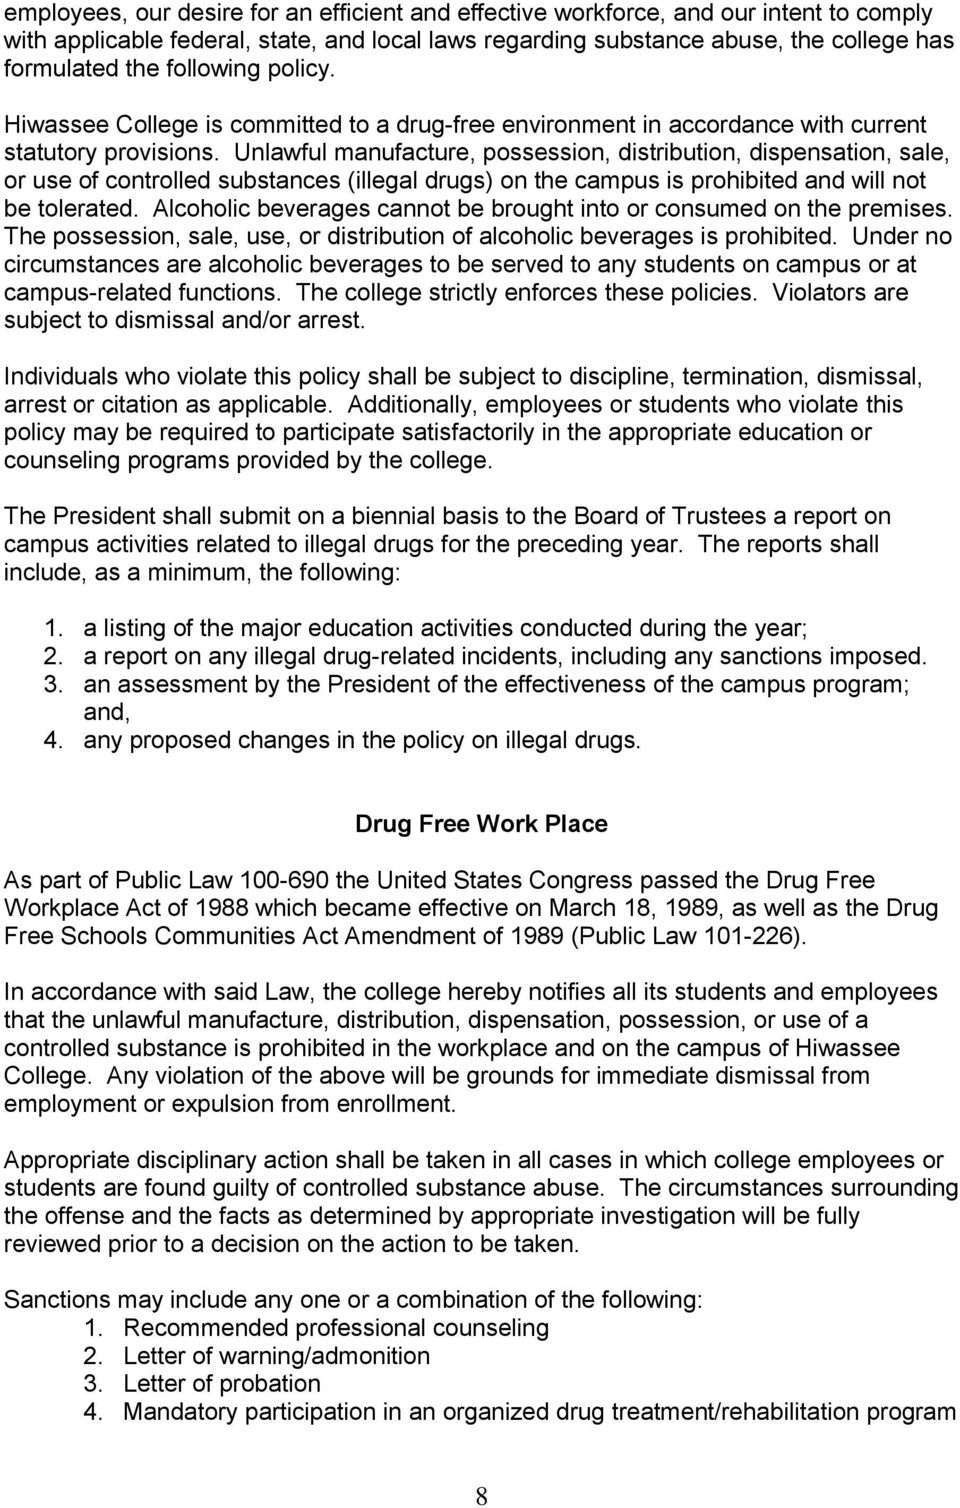 Unlawful manufacture, possession, distribution, dispensation, sale, or use of controlled substances (illegal drugs) on the campus is prohibited and will not be tolerated.